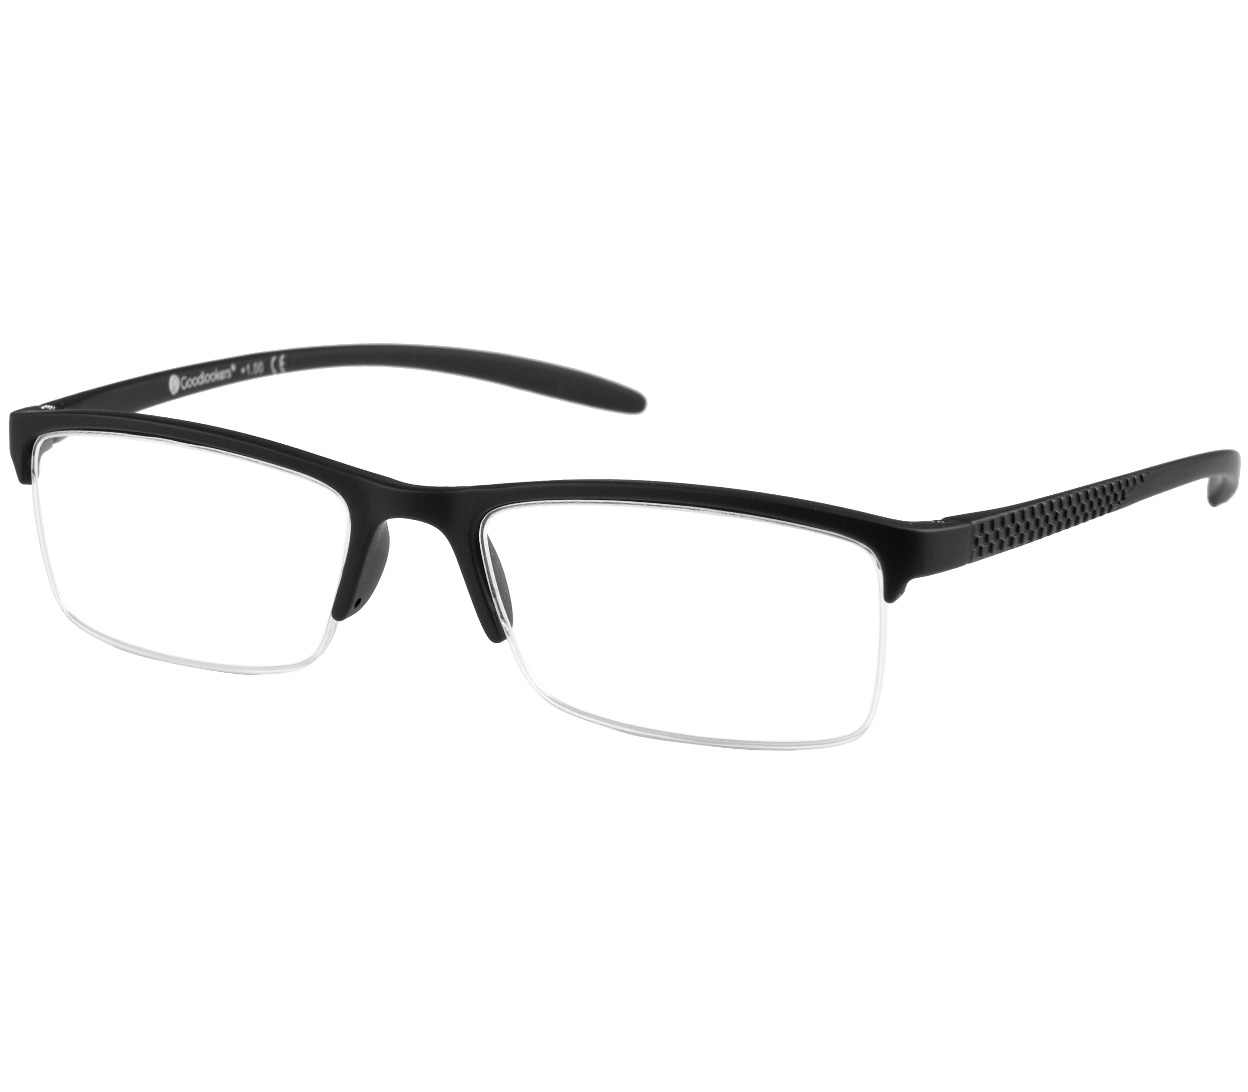 027c060cdc11 Parliament (Black) Semi-rimless Reading Glasses - Thumbnail Product Image